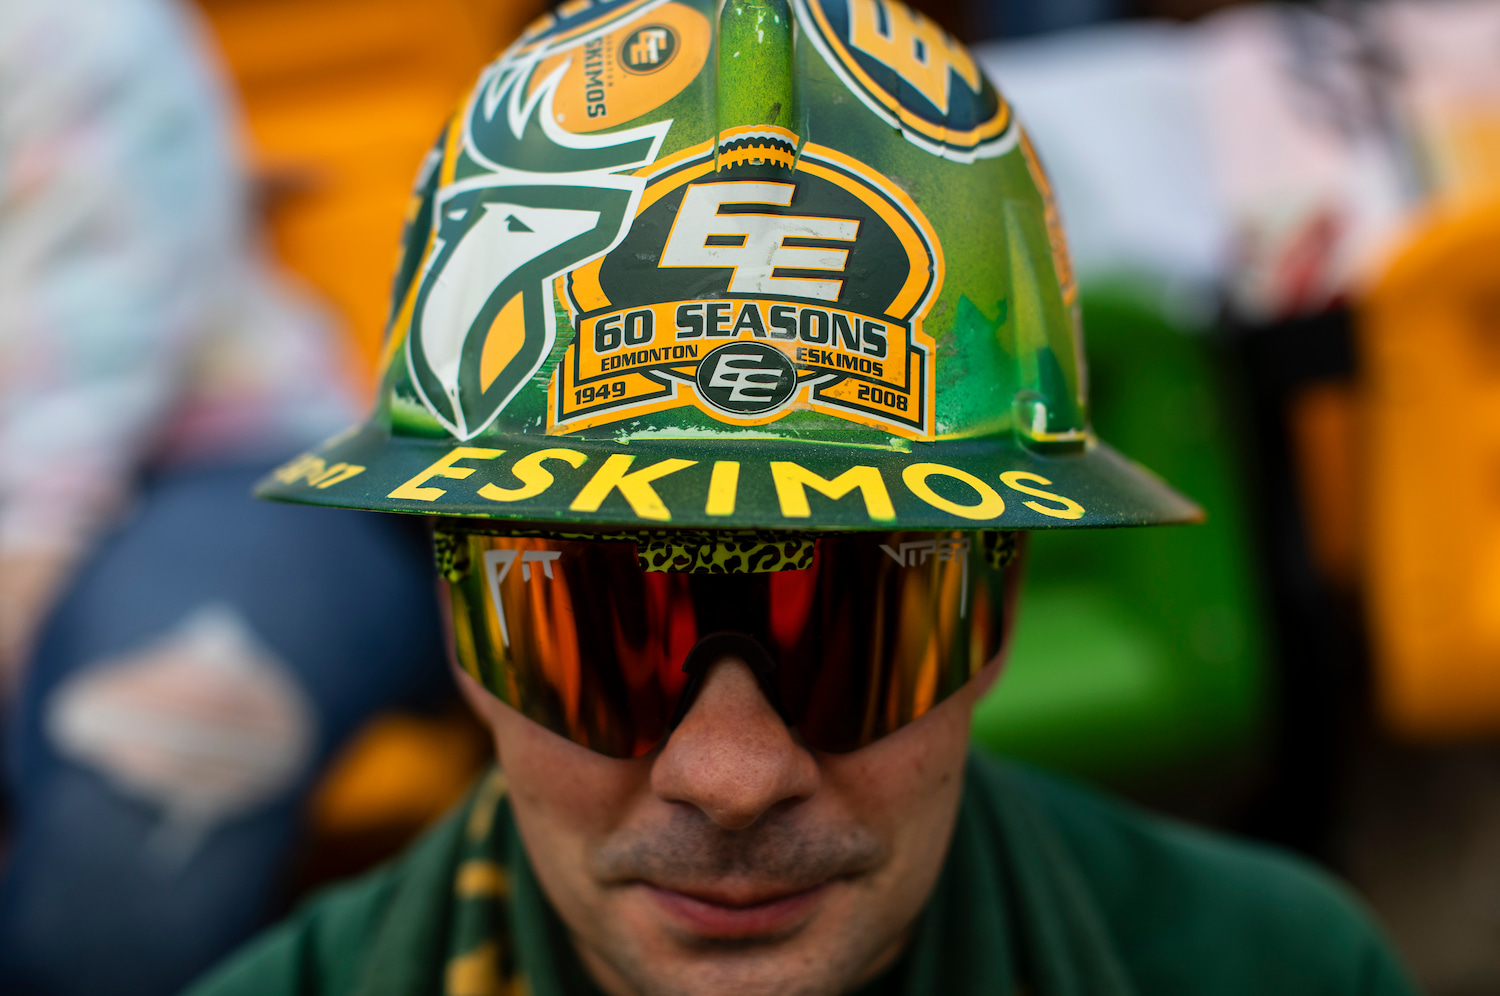 An Edmonton Elks fan wearing a hat with the team's old name.